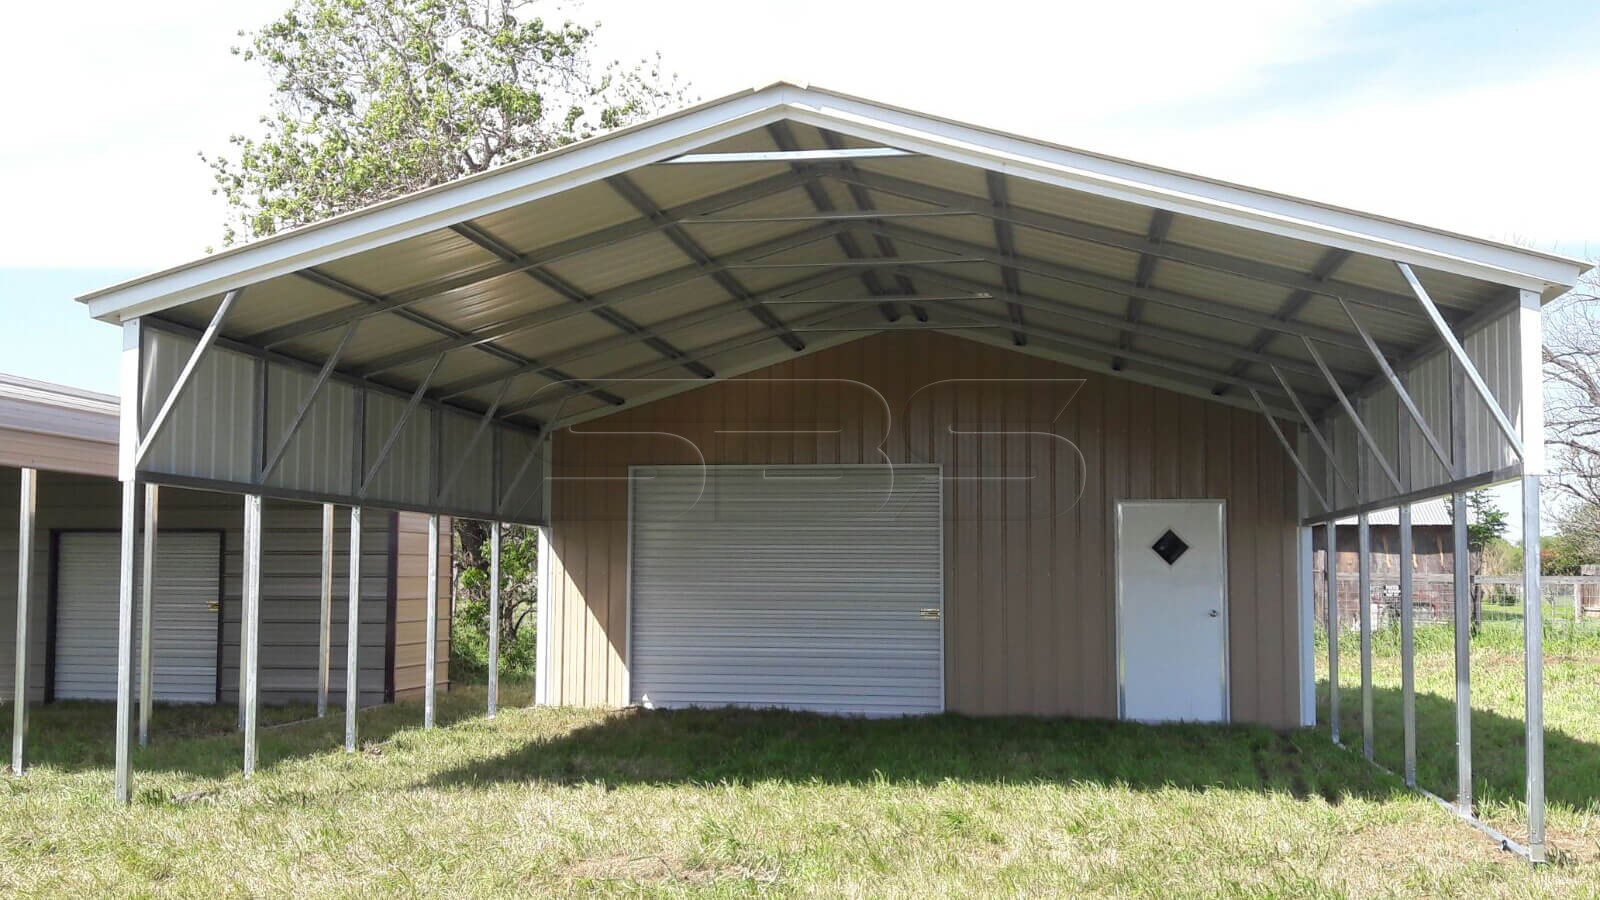 Enclosed Garage With Lean To · Metal Carport With Storage